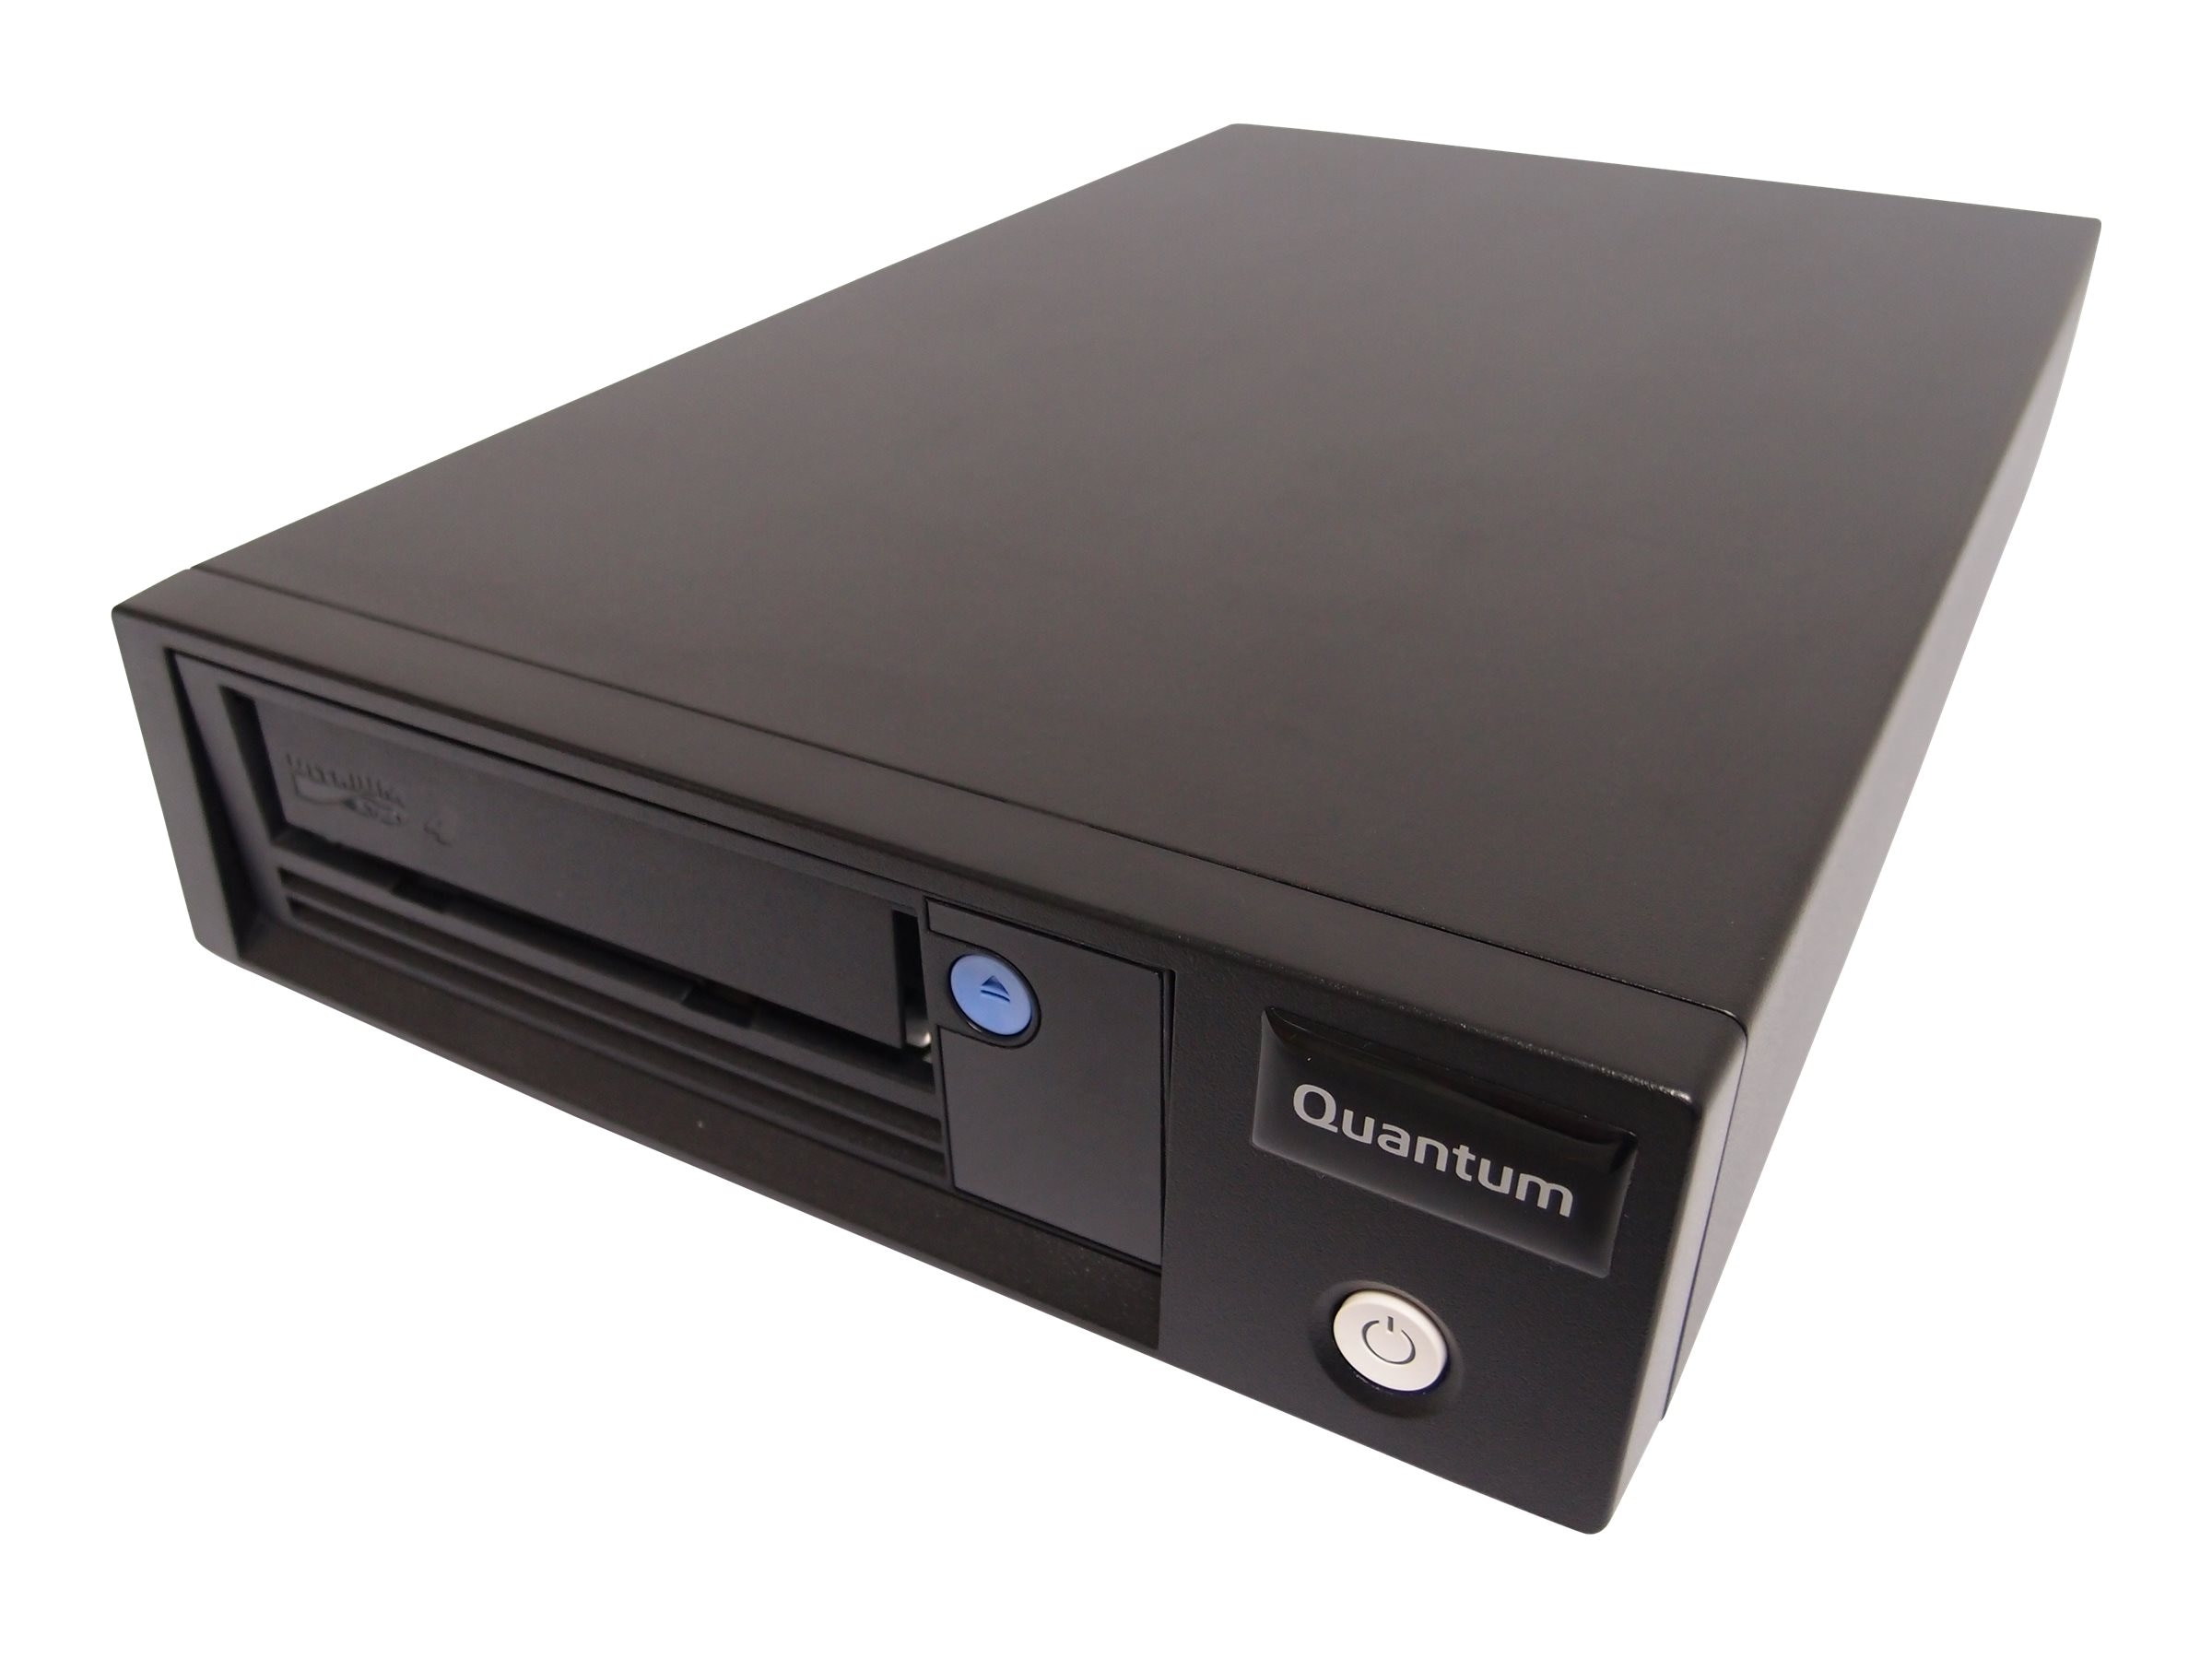 Quantum LTO-4 HH Model C SAS Tabletop Tape Drive Kit - Black Bezel, TC-L42BN-EY-C, 17350120, Tape Drives